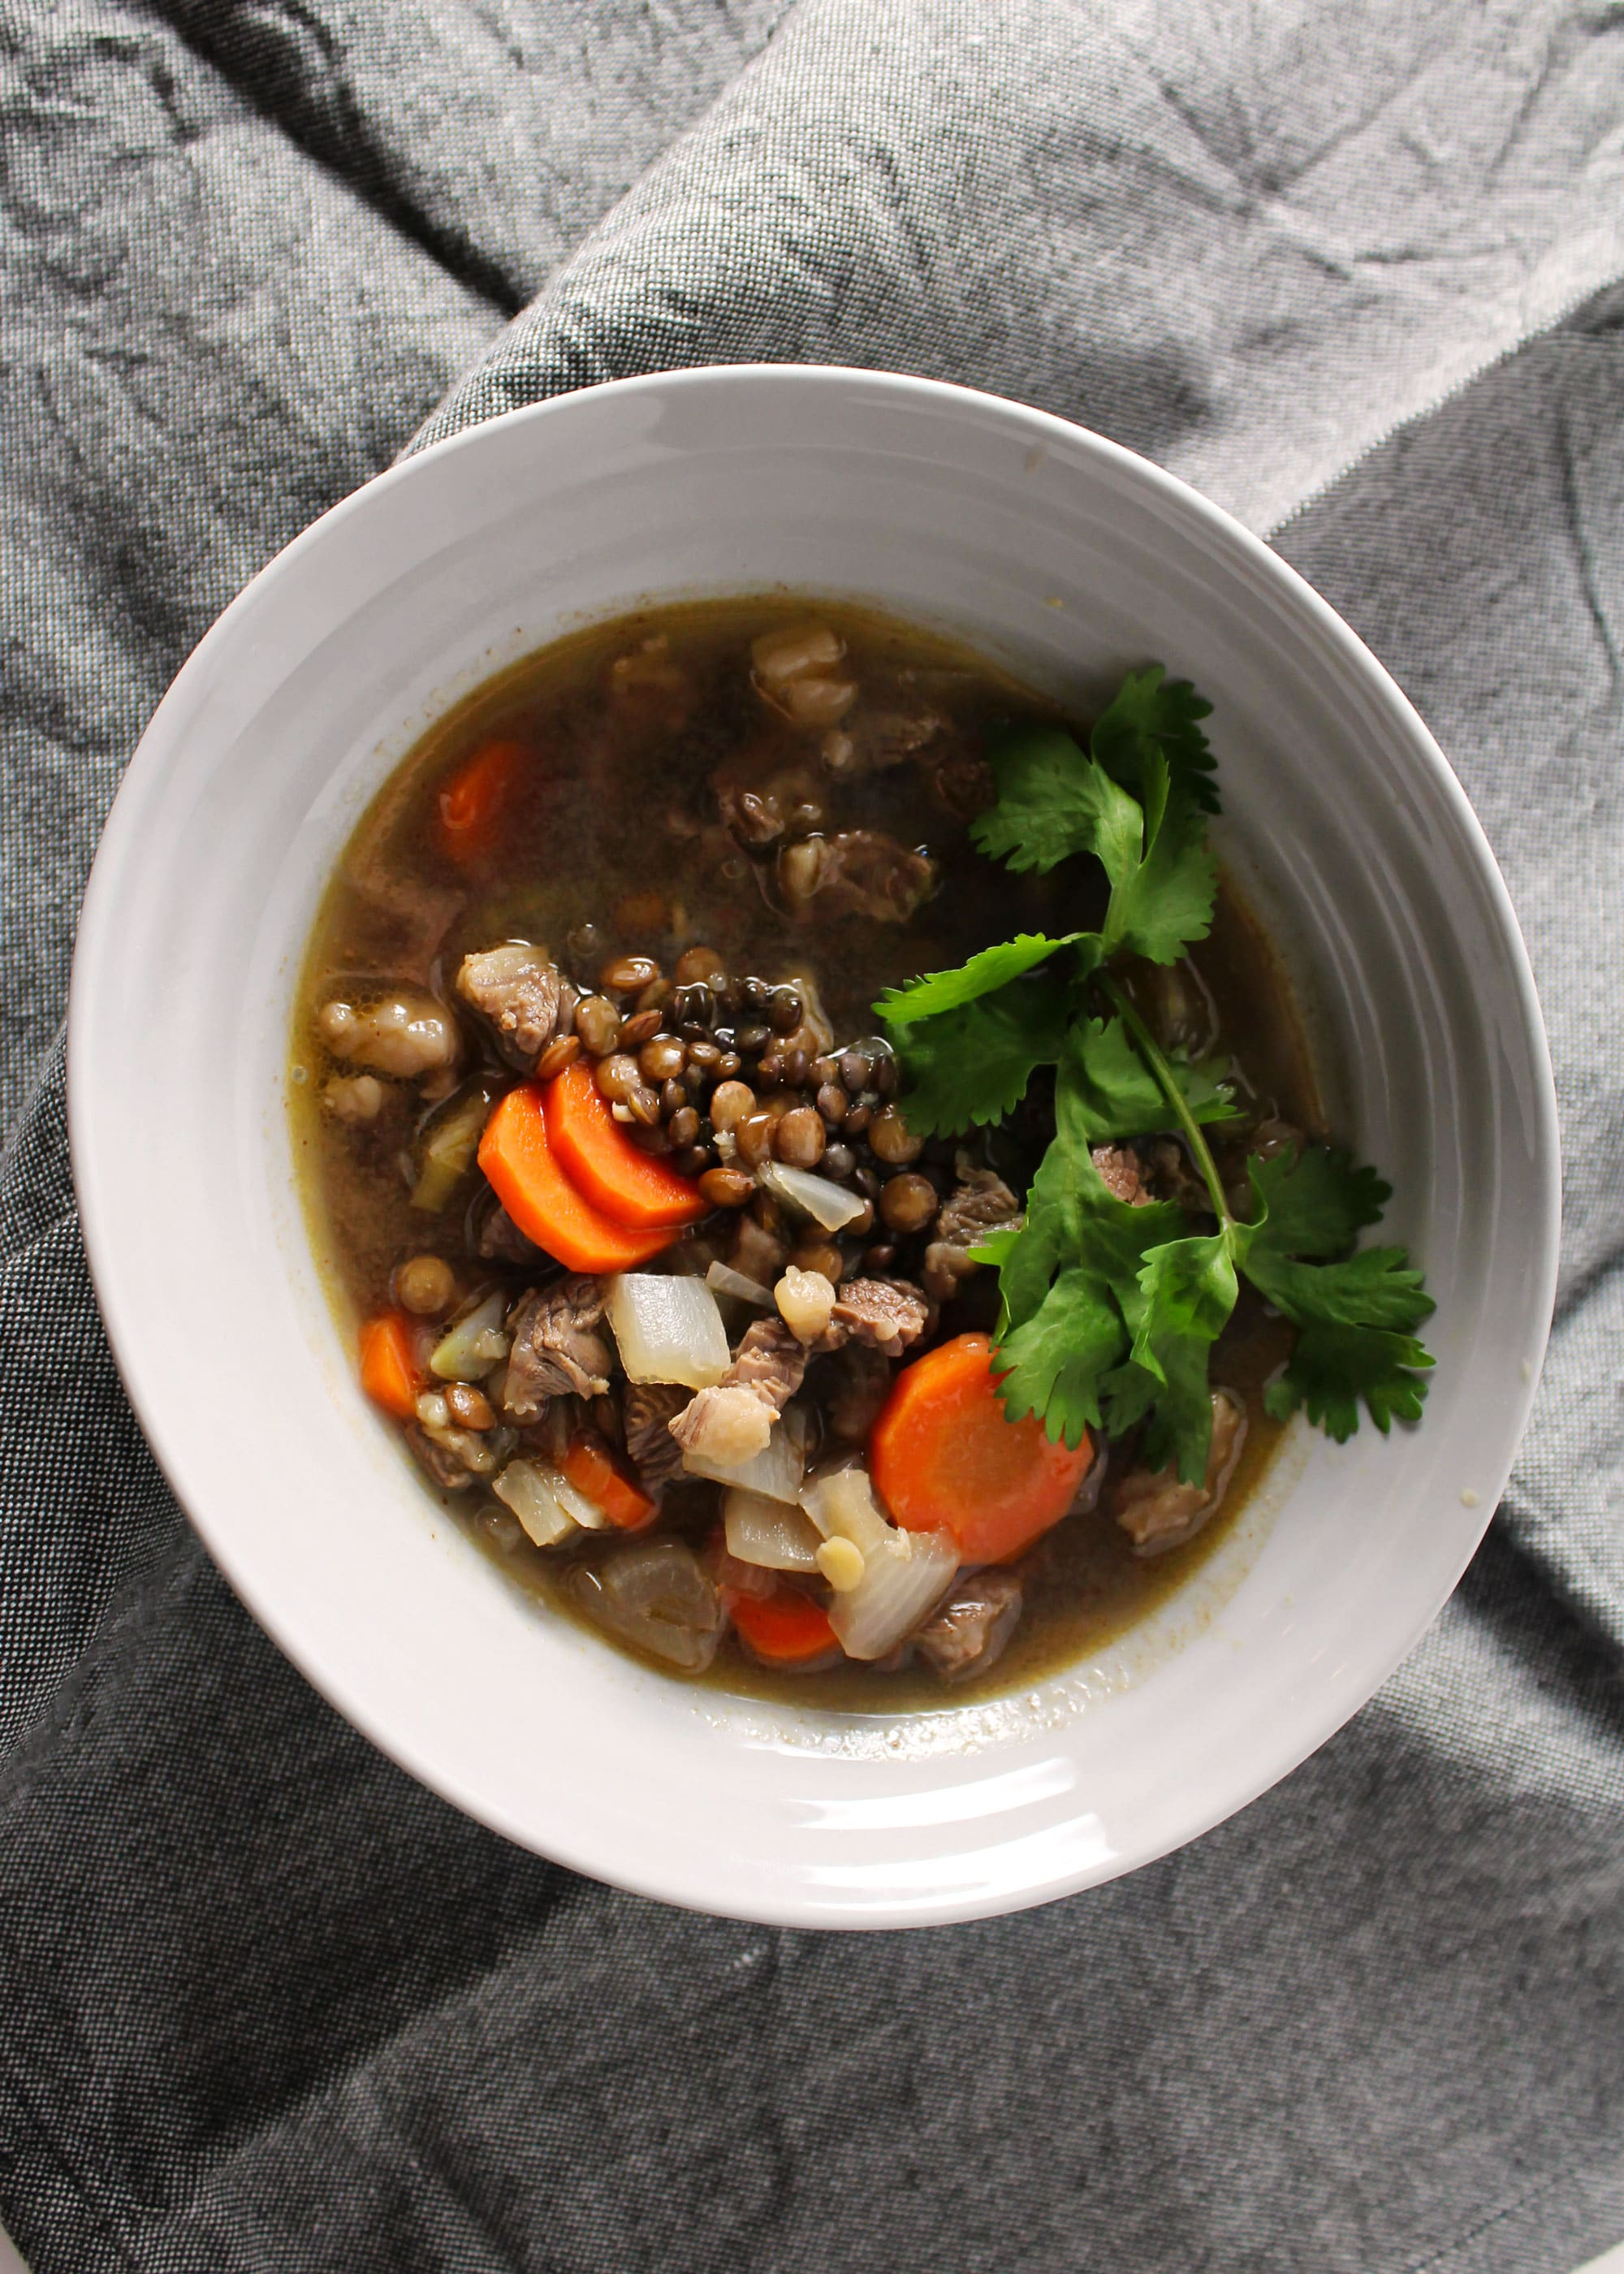 easy beef and lentil stew in gray bowl on linen napkin